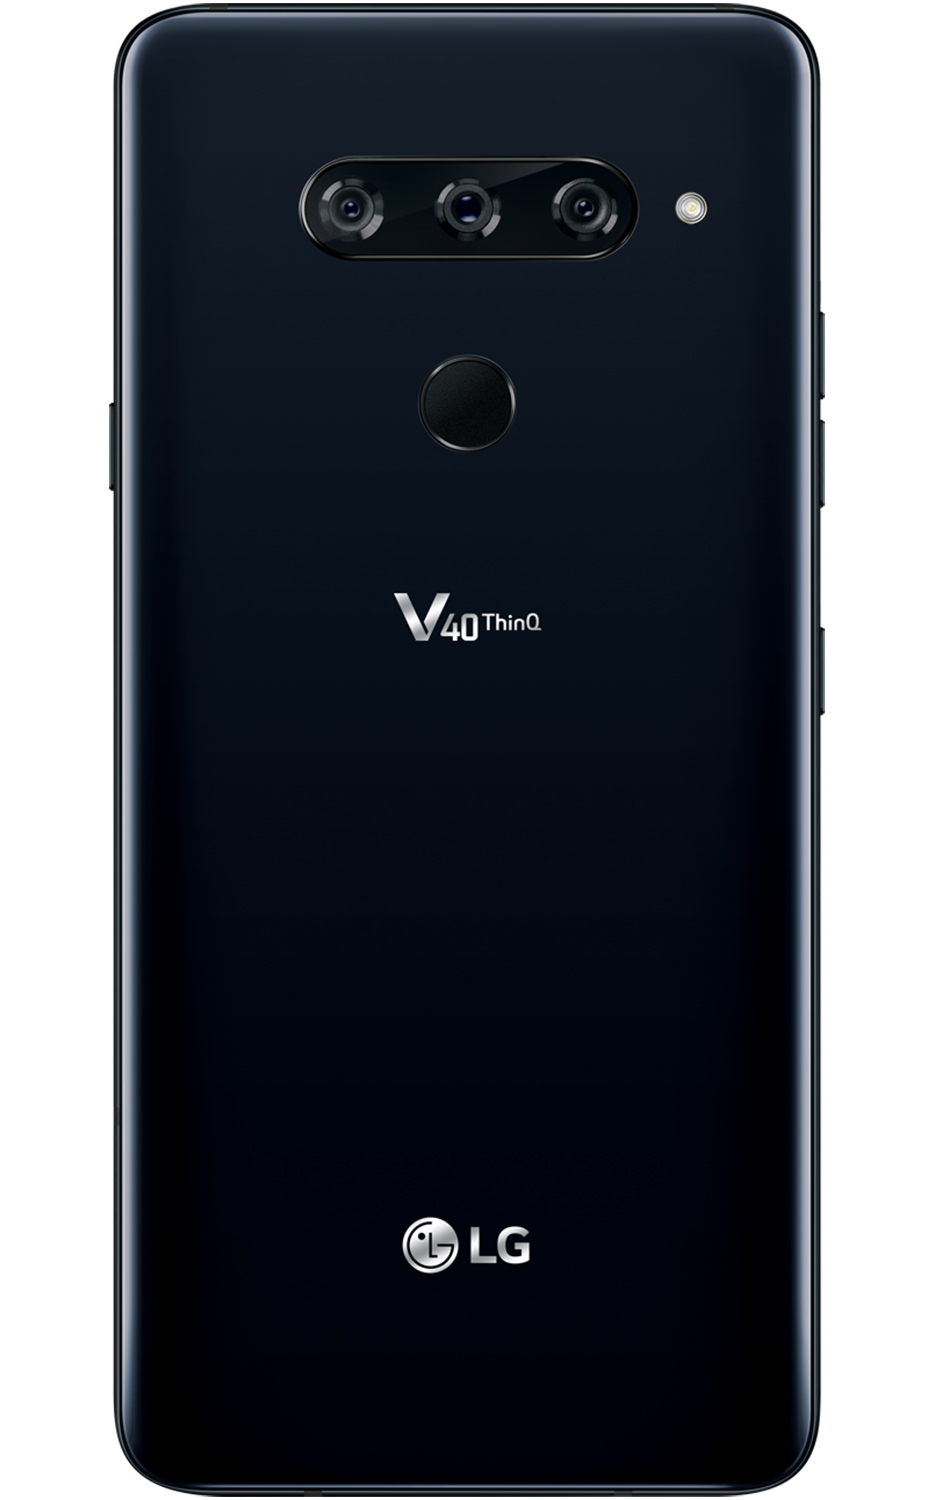 LG V40 THINQ launched : price, specs, features, overview